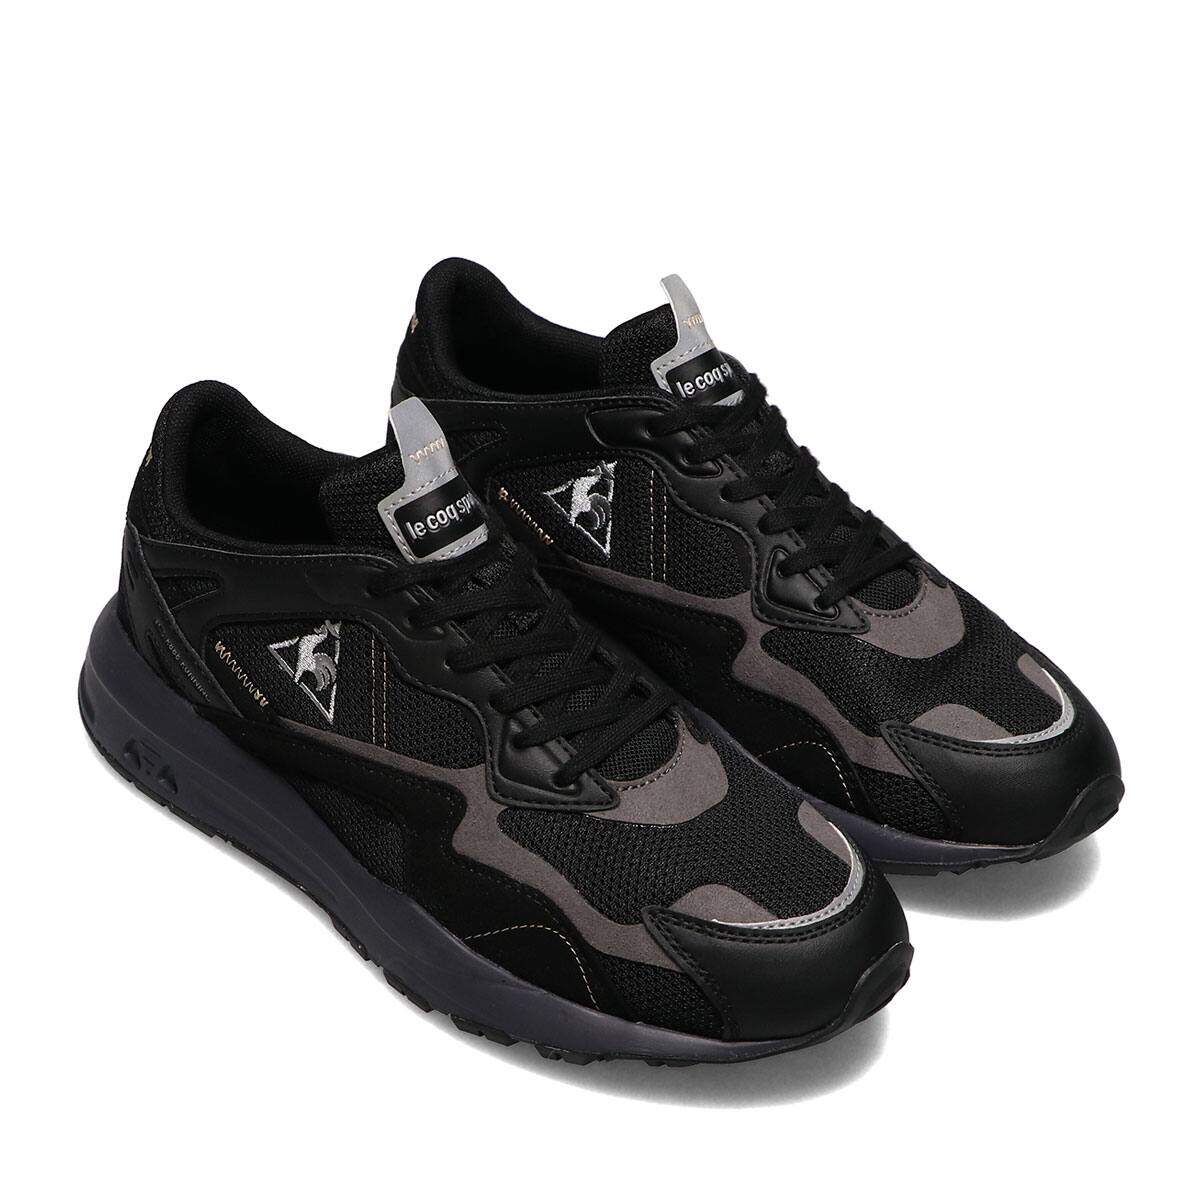 le coq sportif LCS R888 BLACK 21SS-I_photo_large